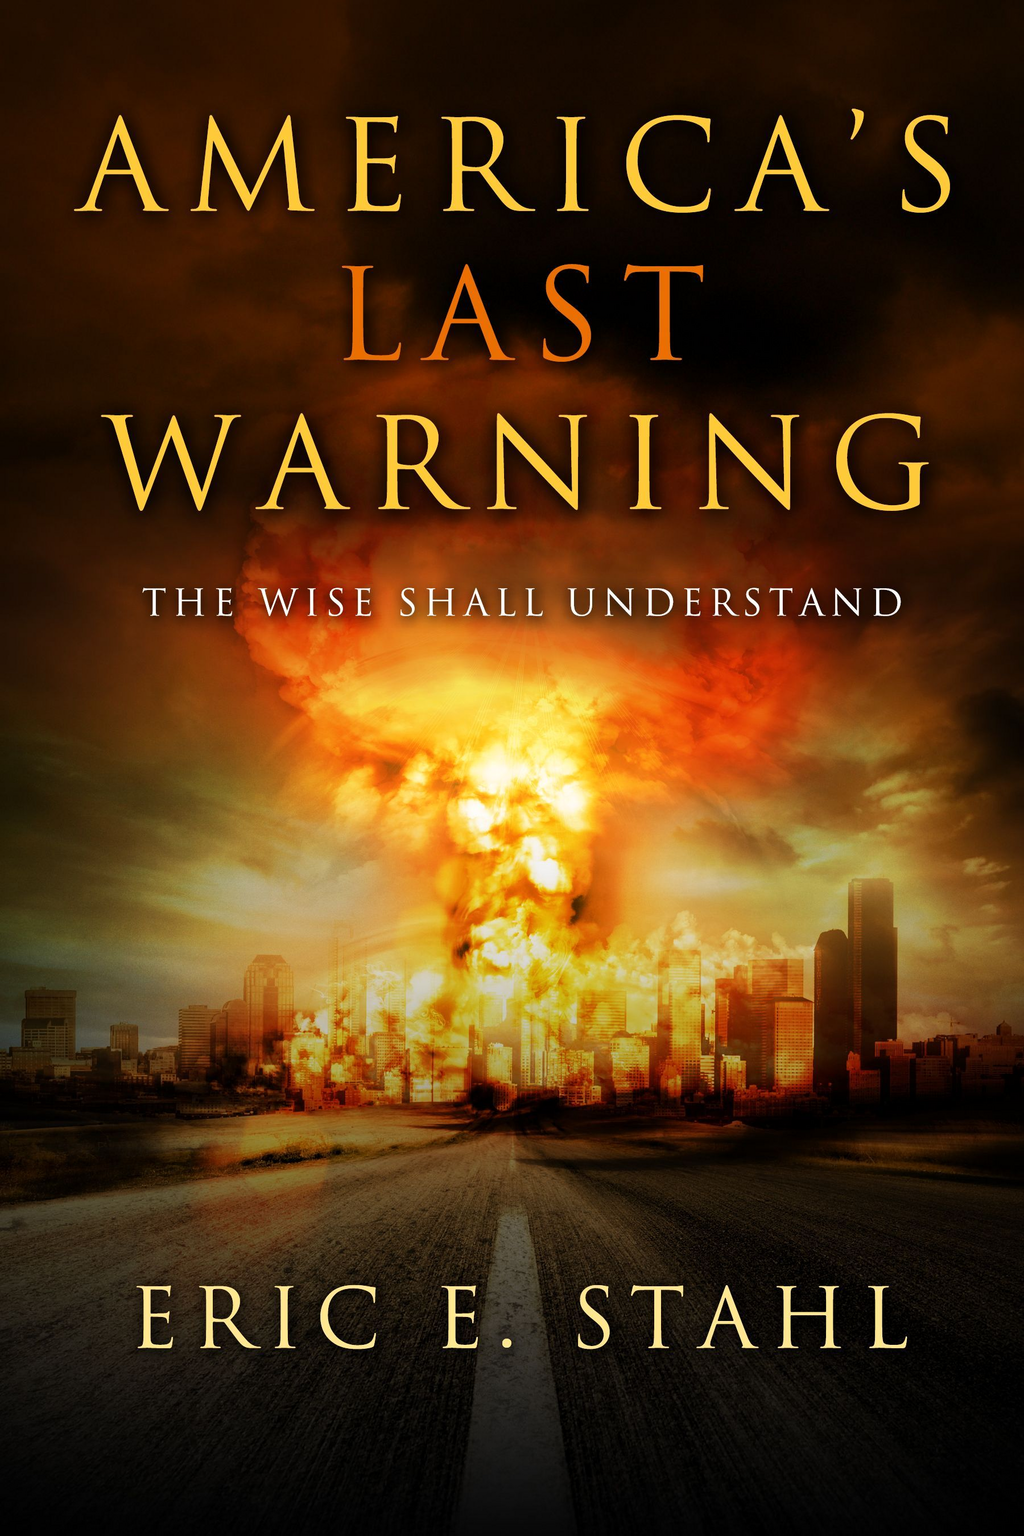 America's Last Warning: The Wise Shall Understand